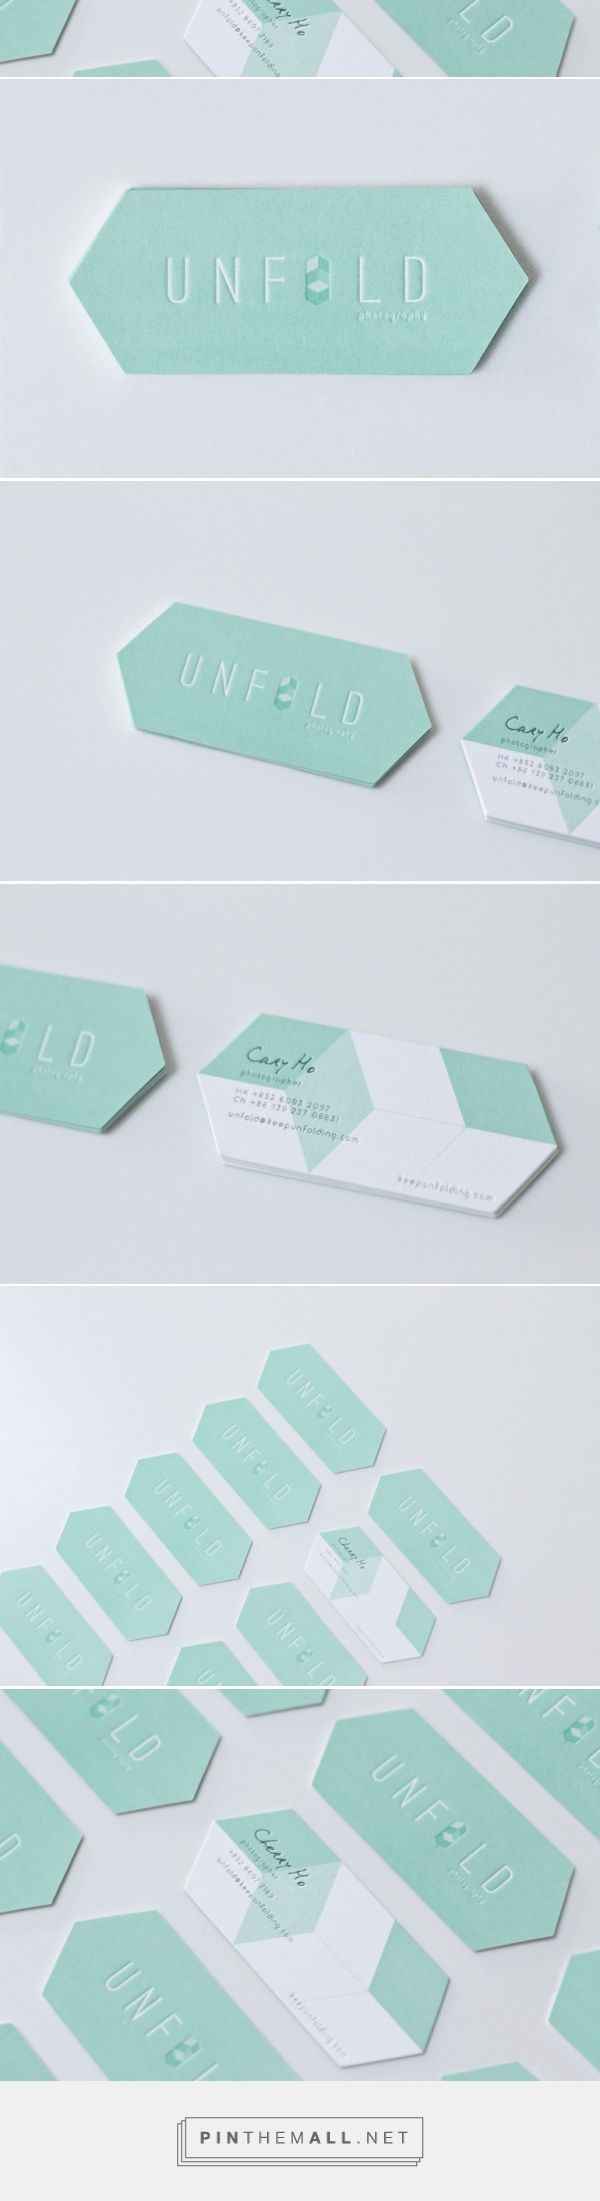 Unique custom shaped business cards unfold branding pinterest unique custom shaped business cards unfold colourmoves Gallery